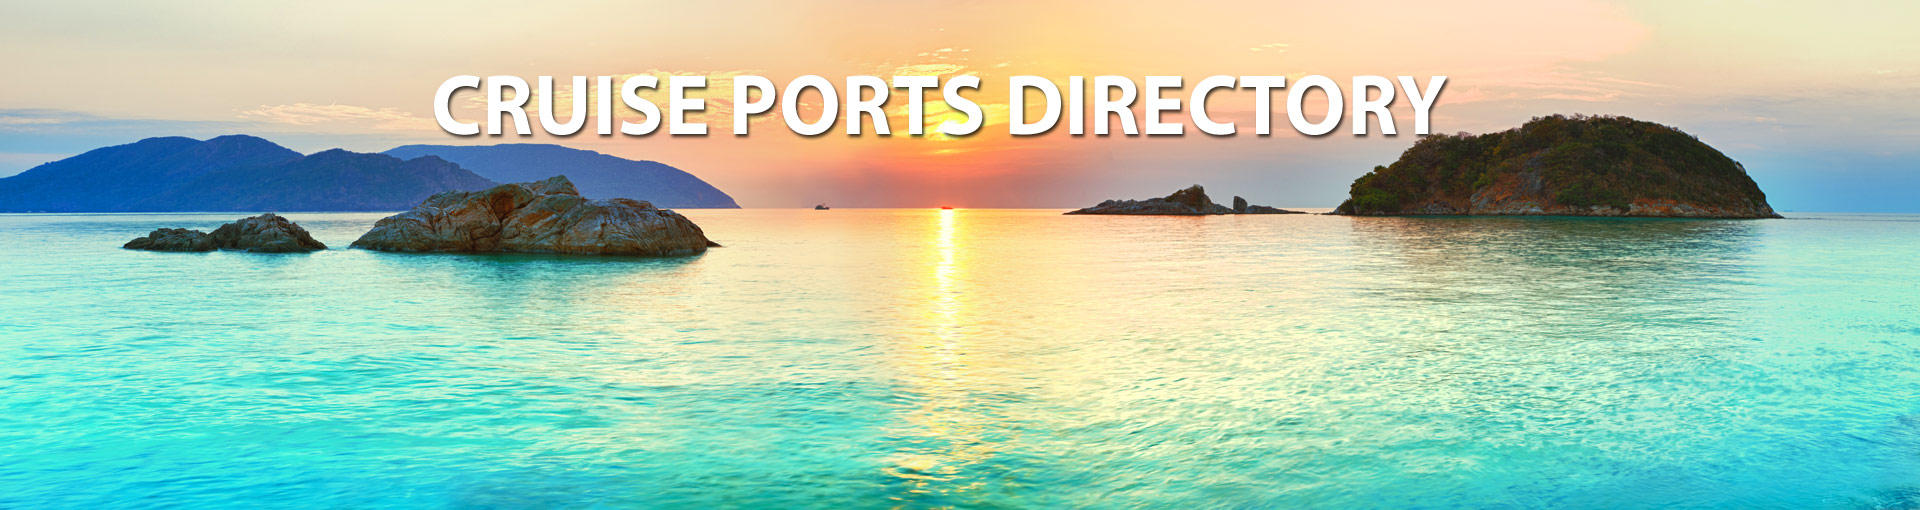 Cruise Ports Directory